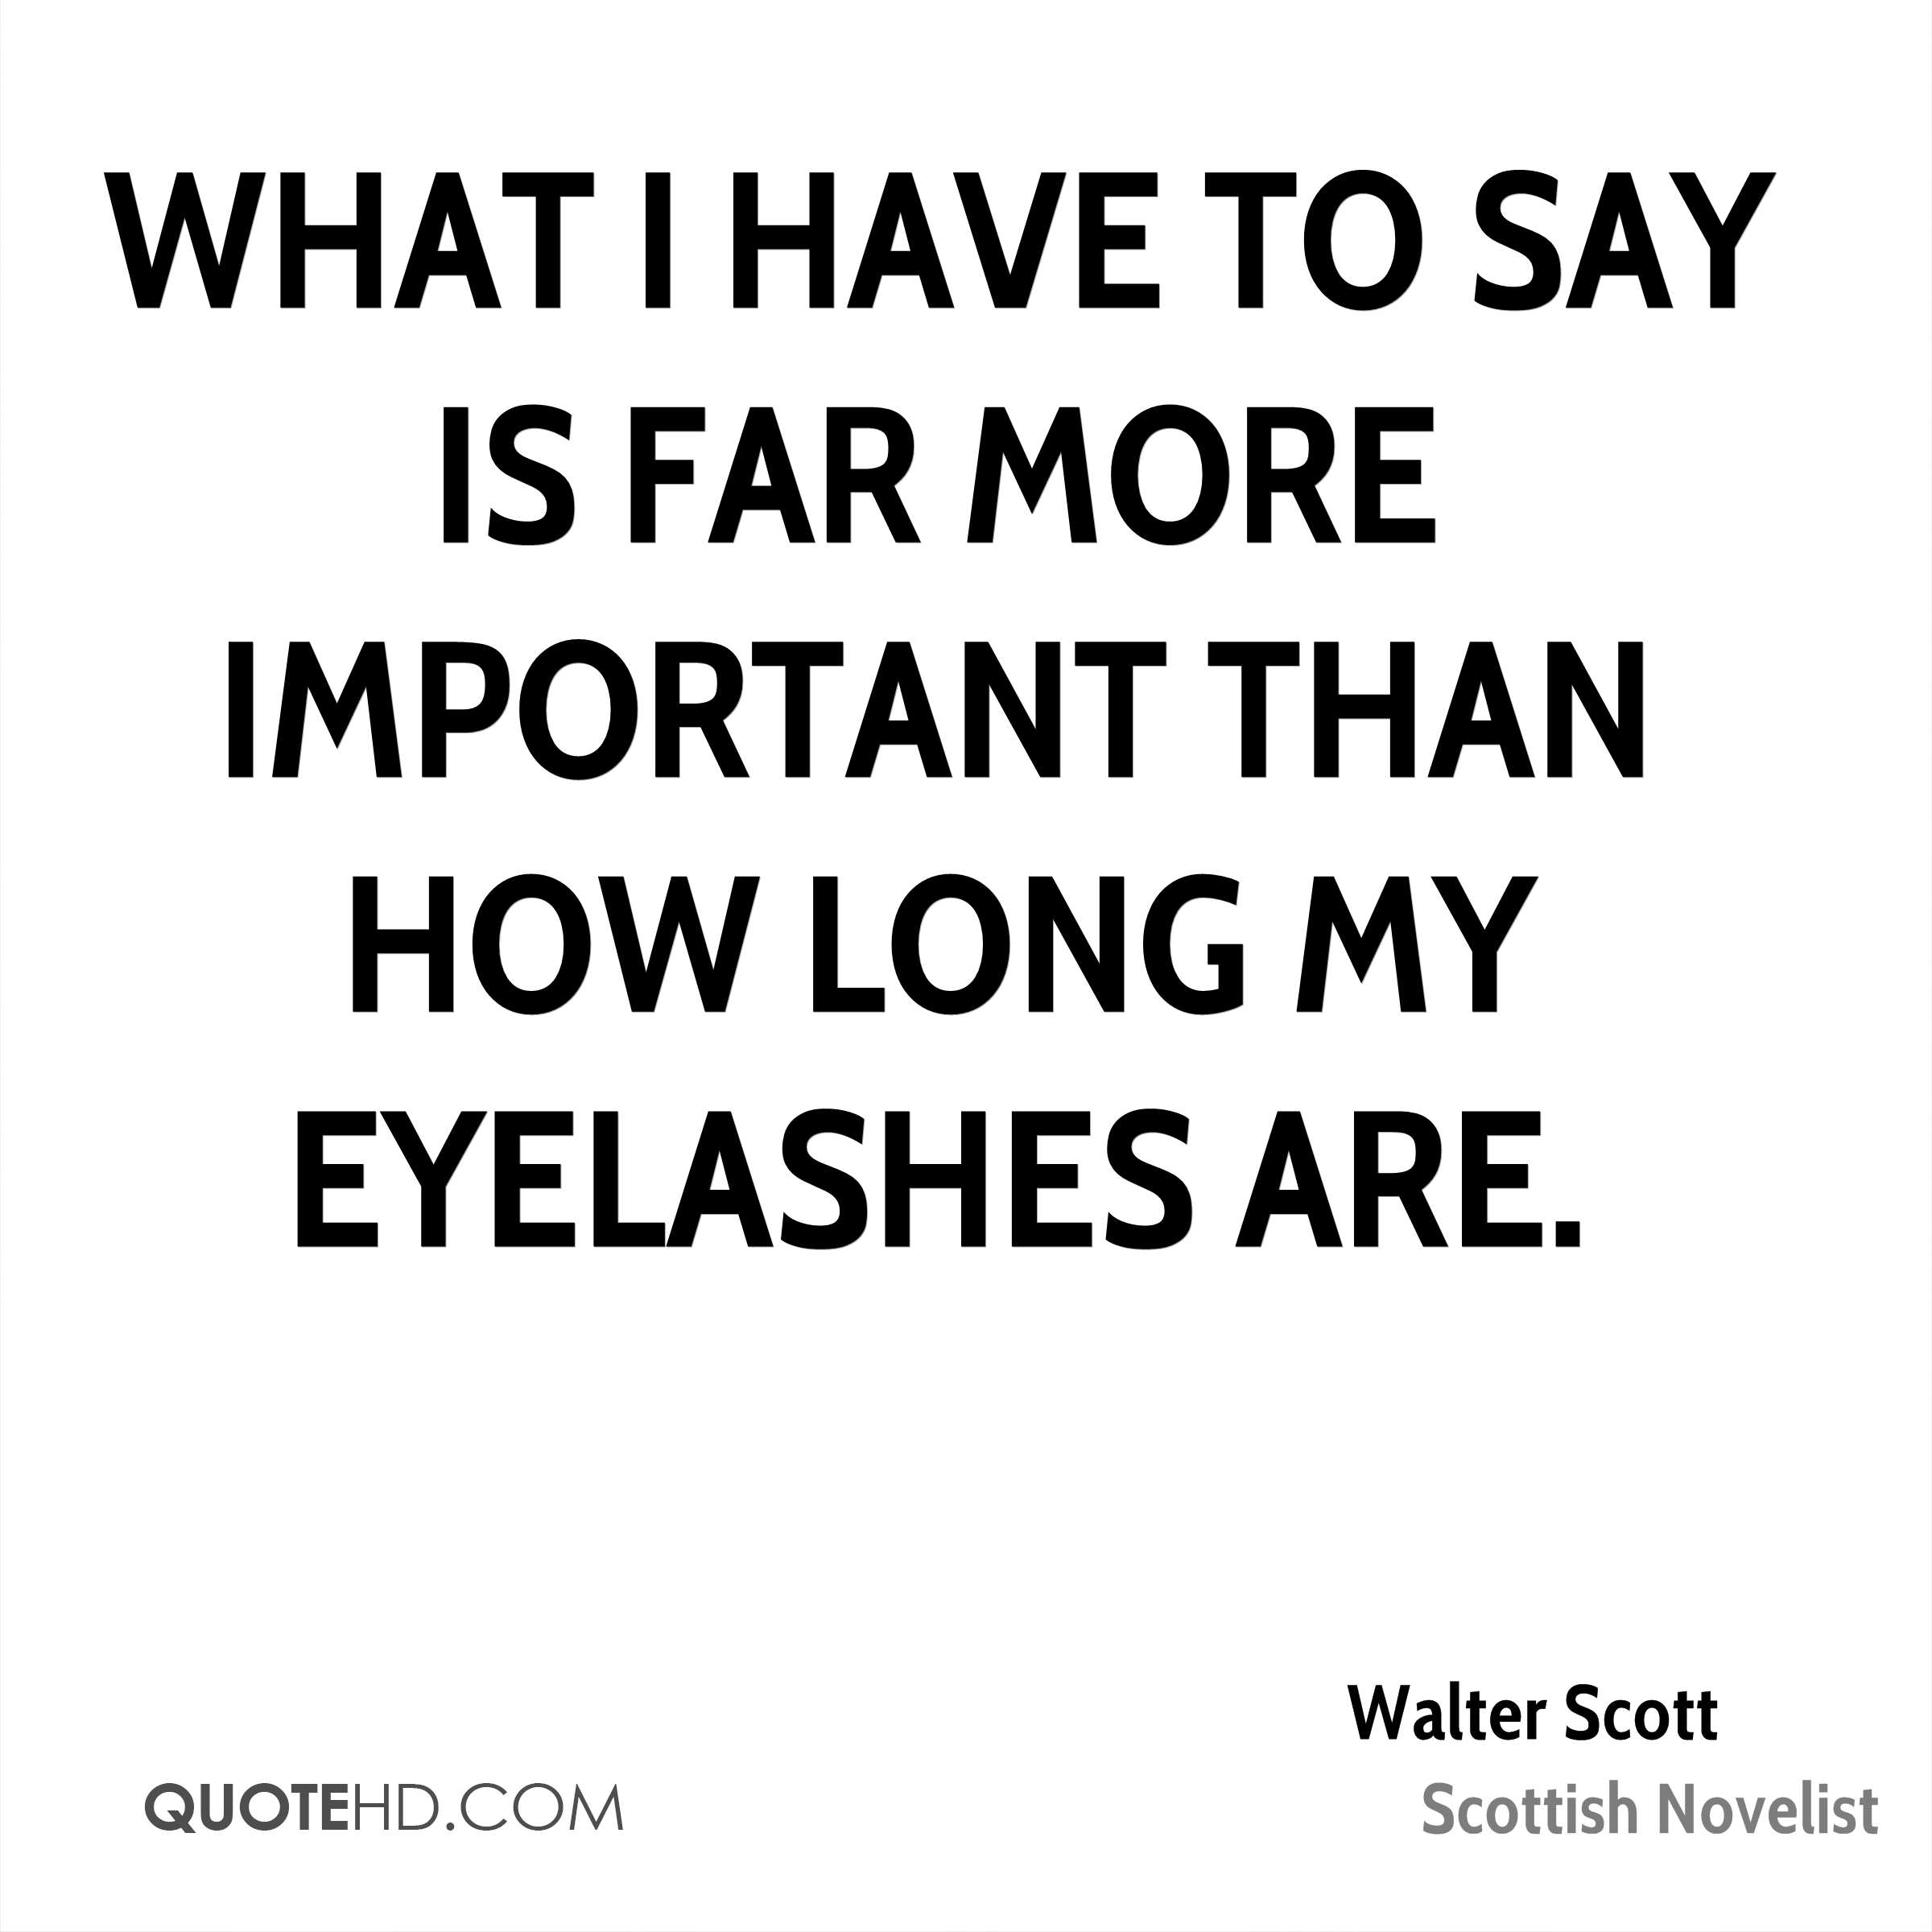 What I have to say is far more important than how long my eyelashes are.